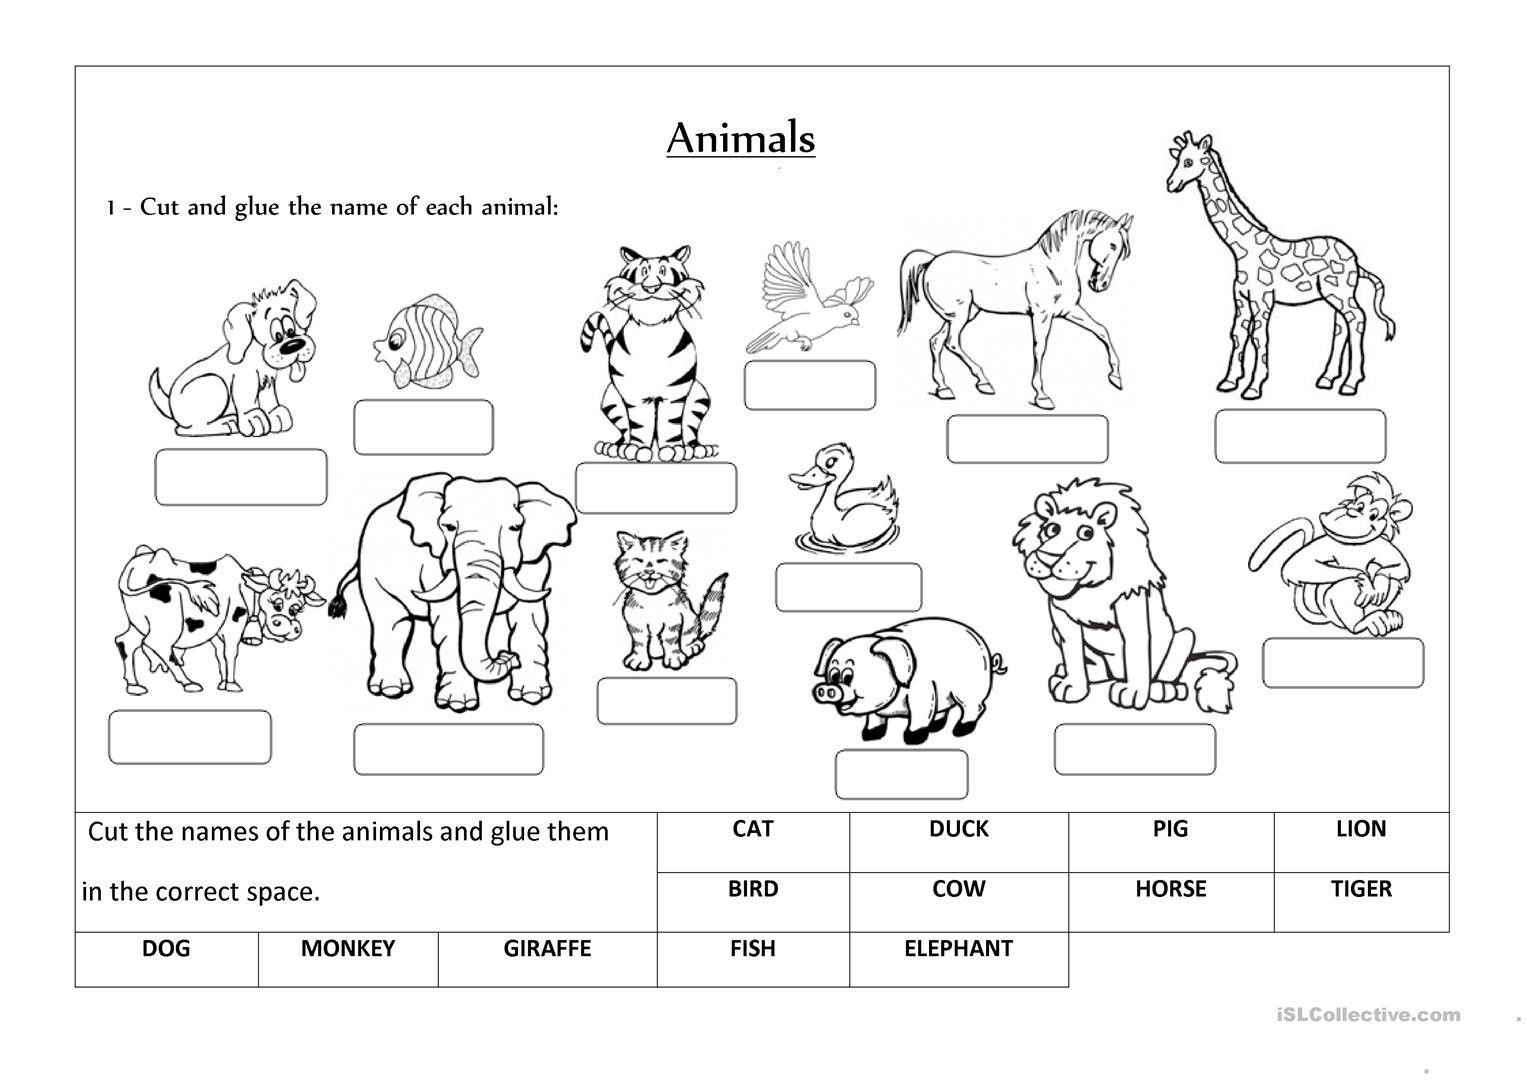 3 Wild Animals Worksheets For Preschool Animals Label And Classify English Esl Worksheets In 2020 Animal Worksheets Worksheets For Kids Animal Classification Worksheet